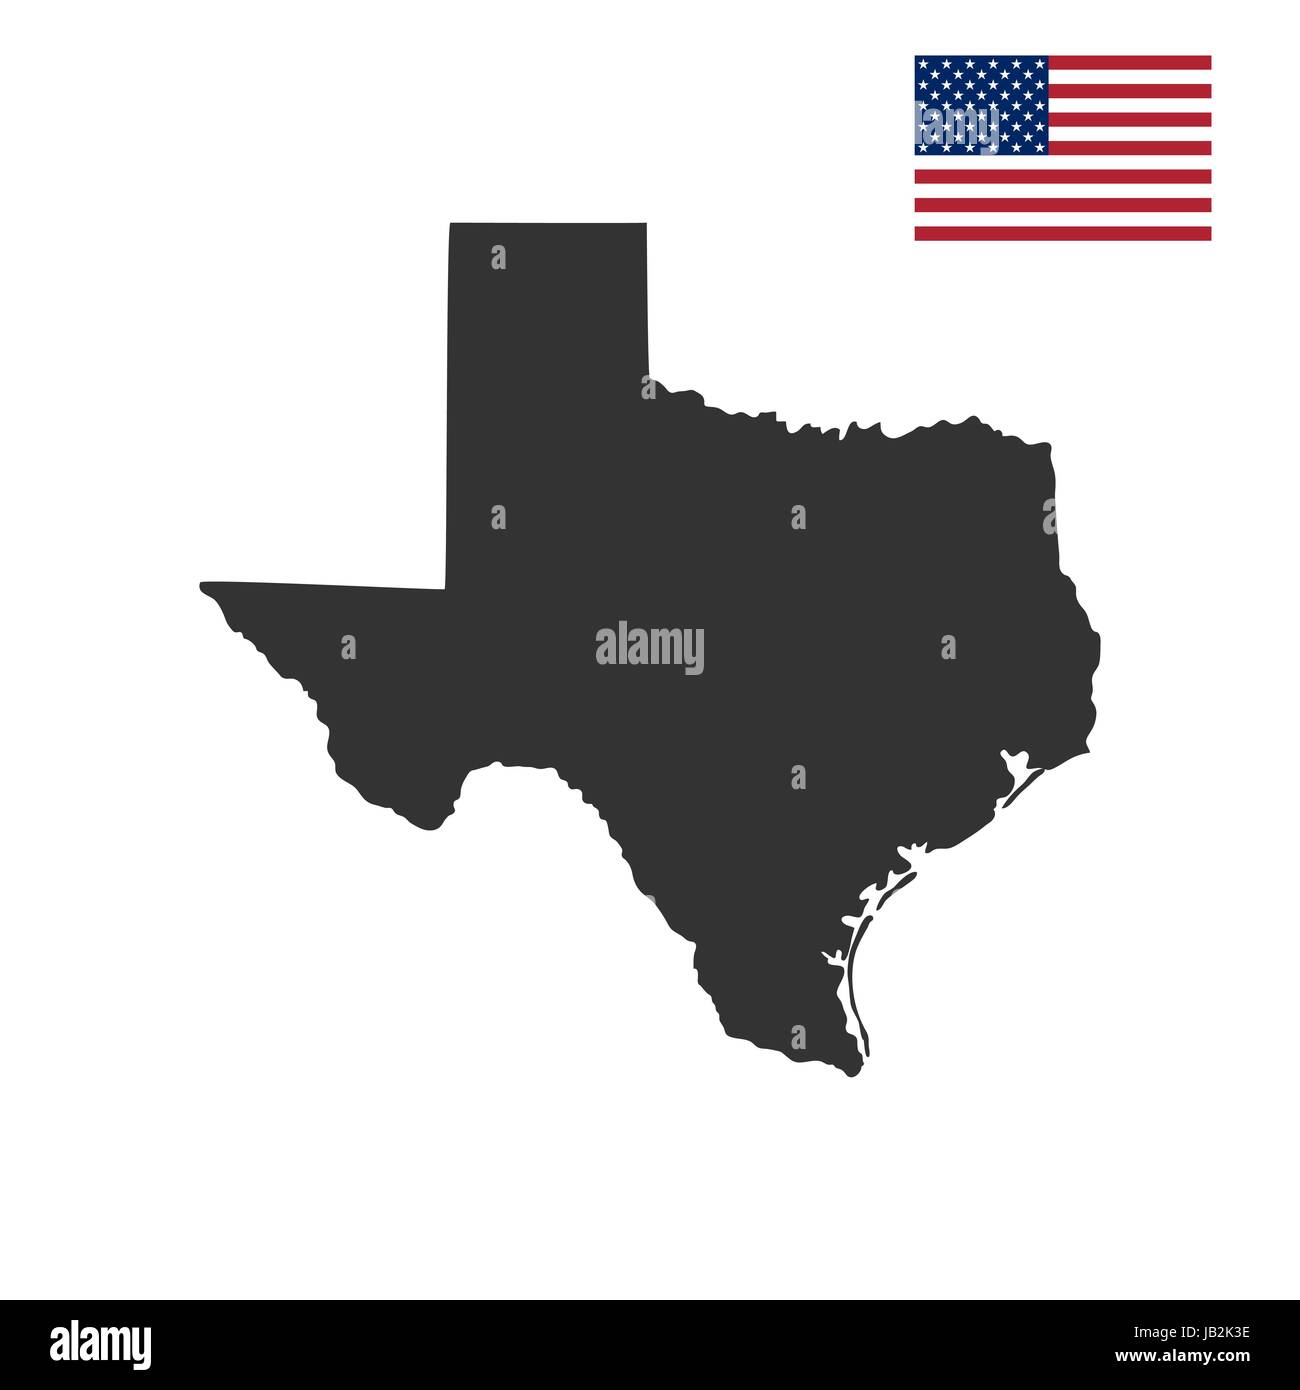 Stock Vector Map Of The U S State Of Texas